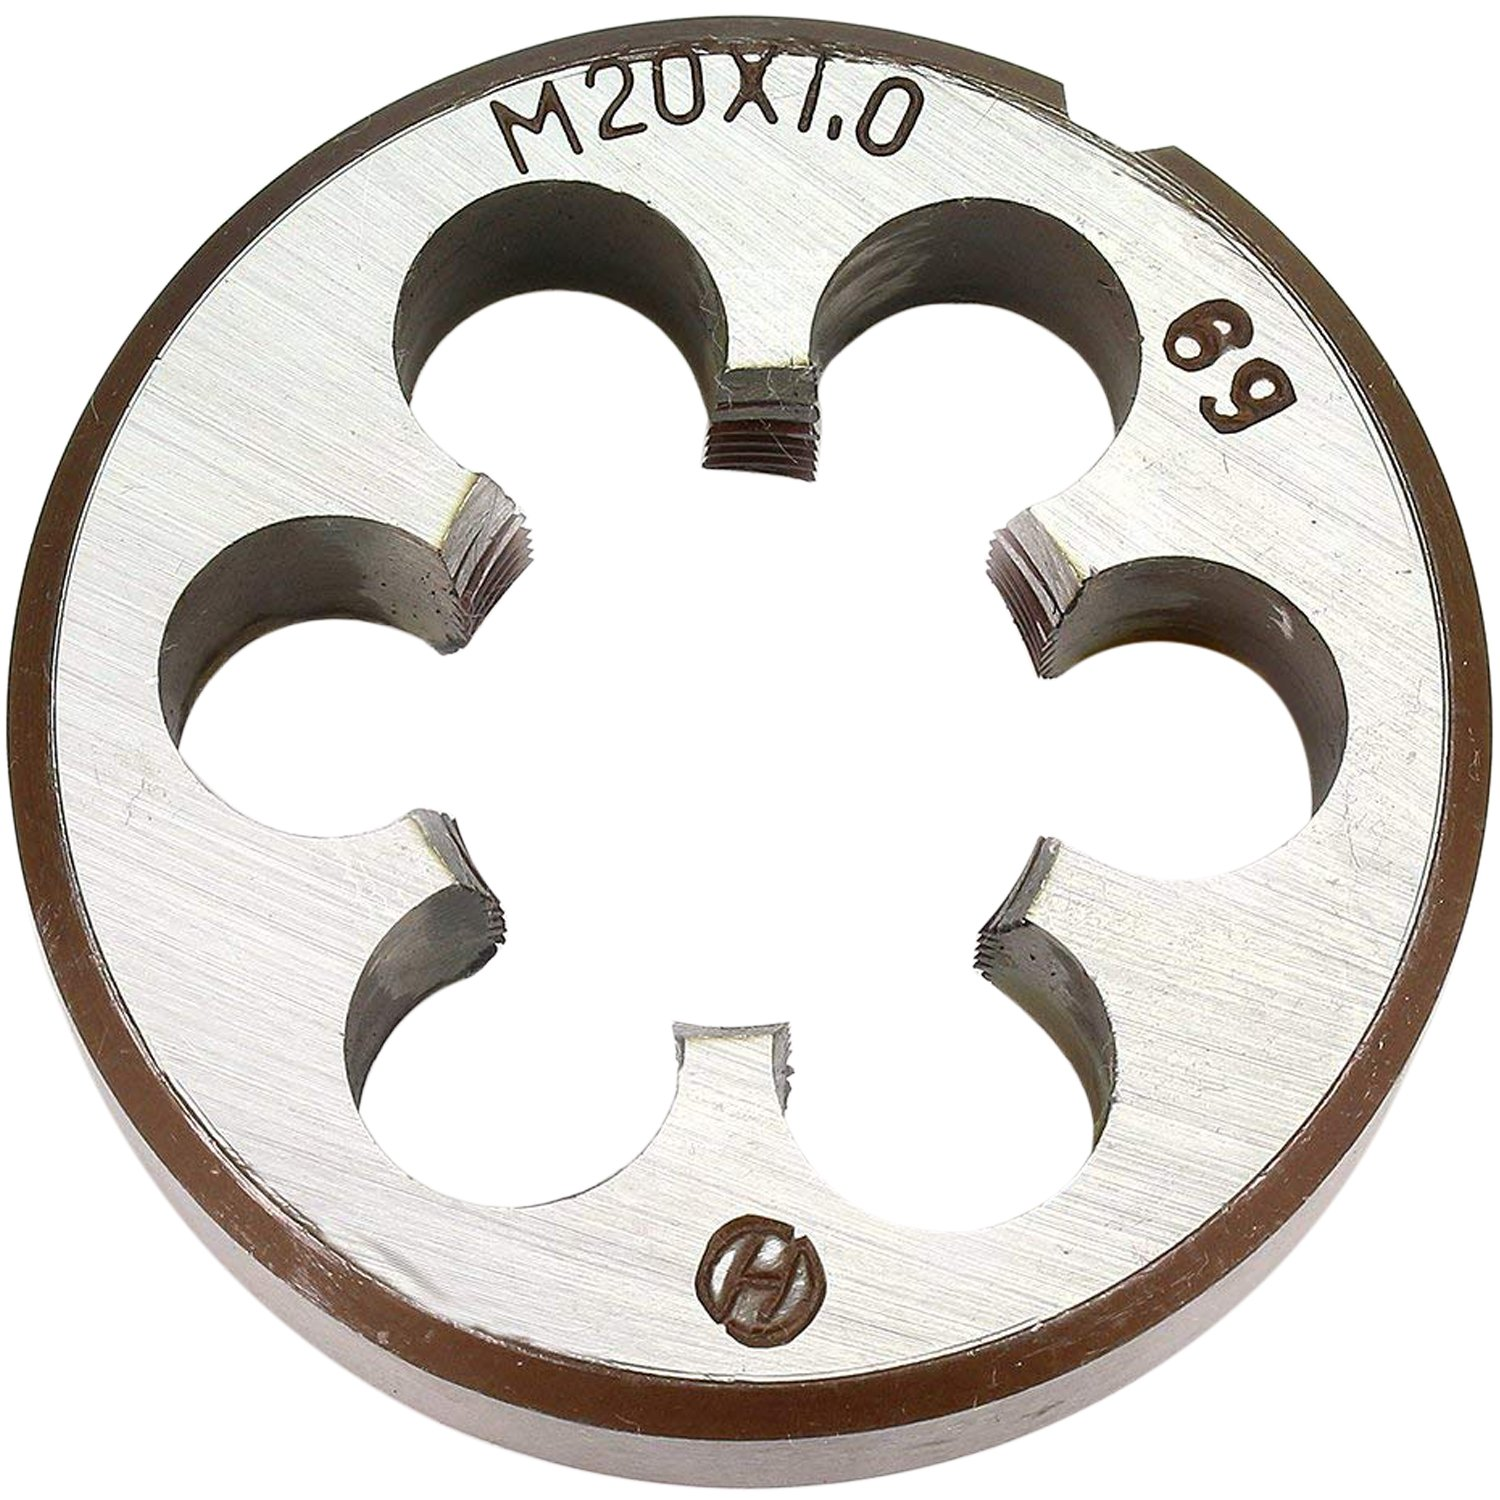 20mm X 1 Metric Right Hand Round Die, Machine Thread Die M20 X 1.0mm Pitch(Alloy Tool Steel Material, not HSS) by KMIAN TOOLS